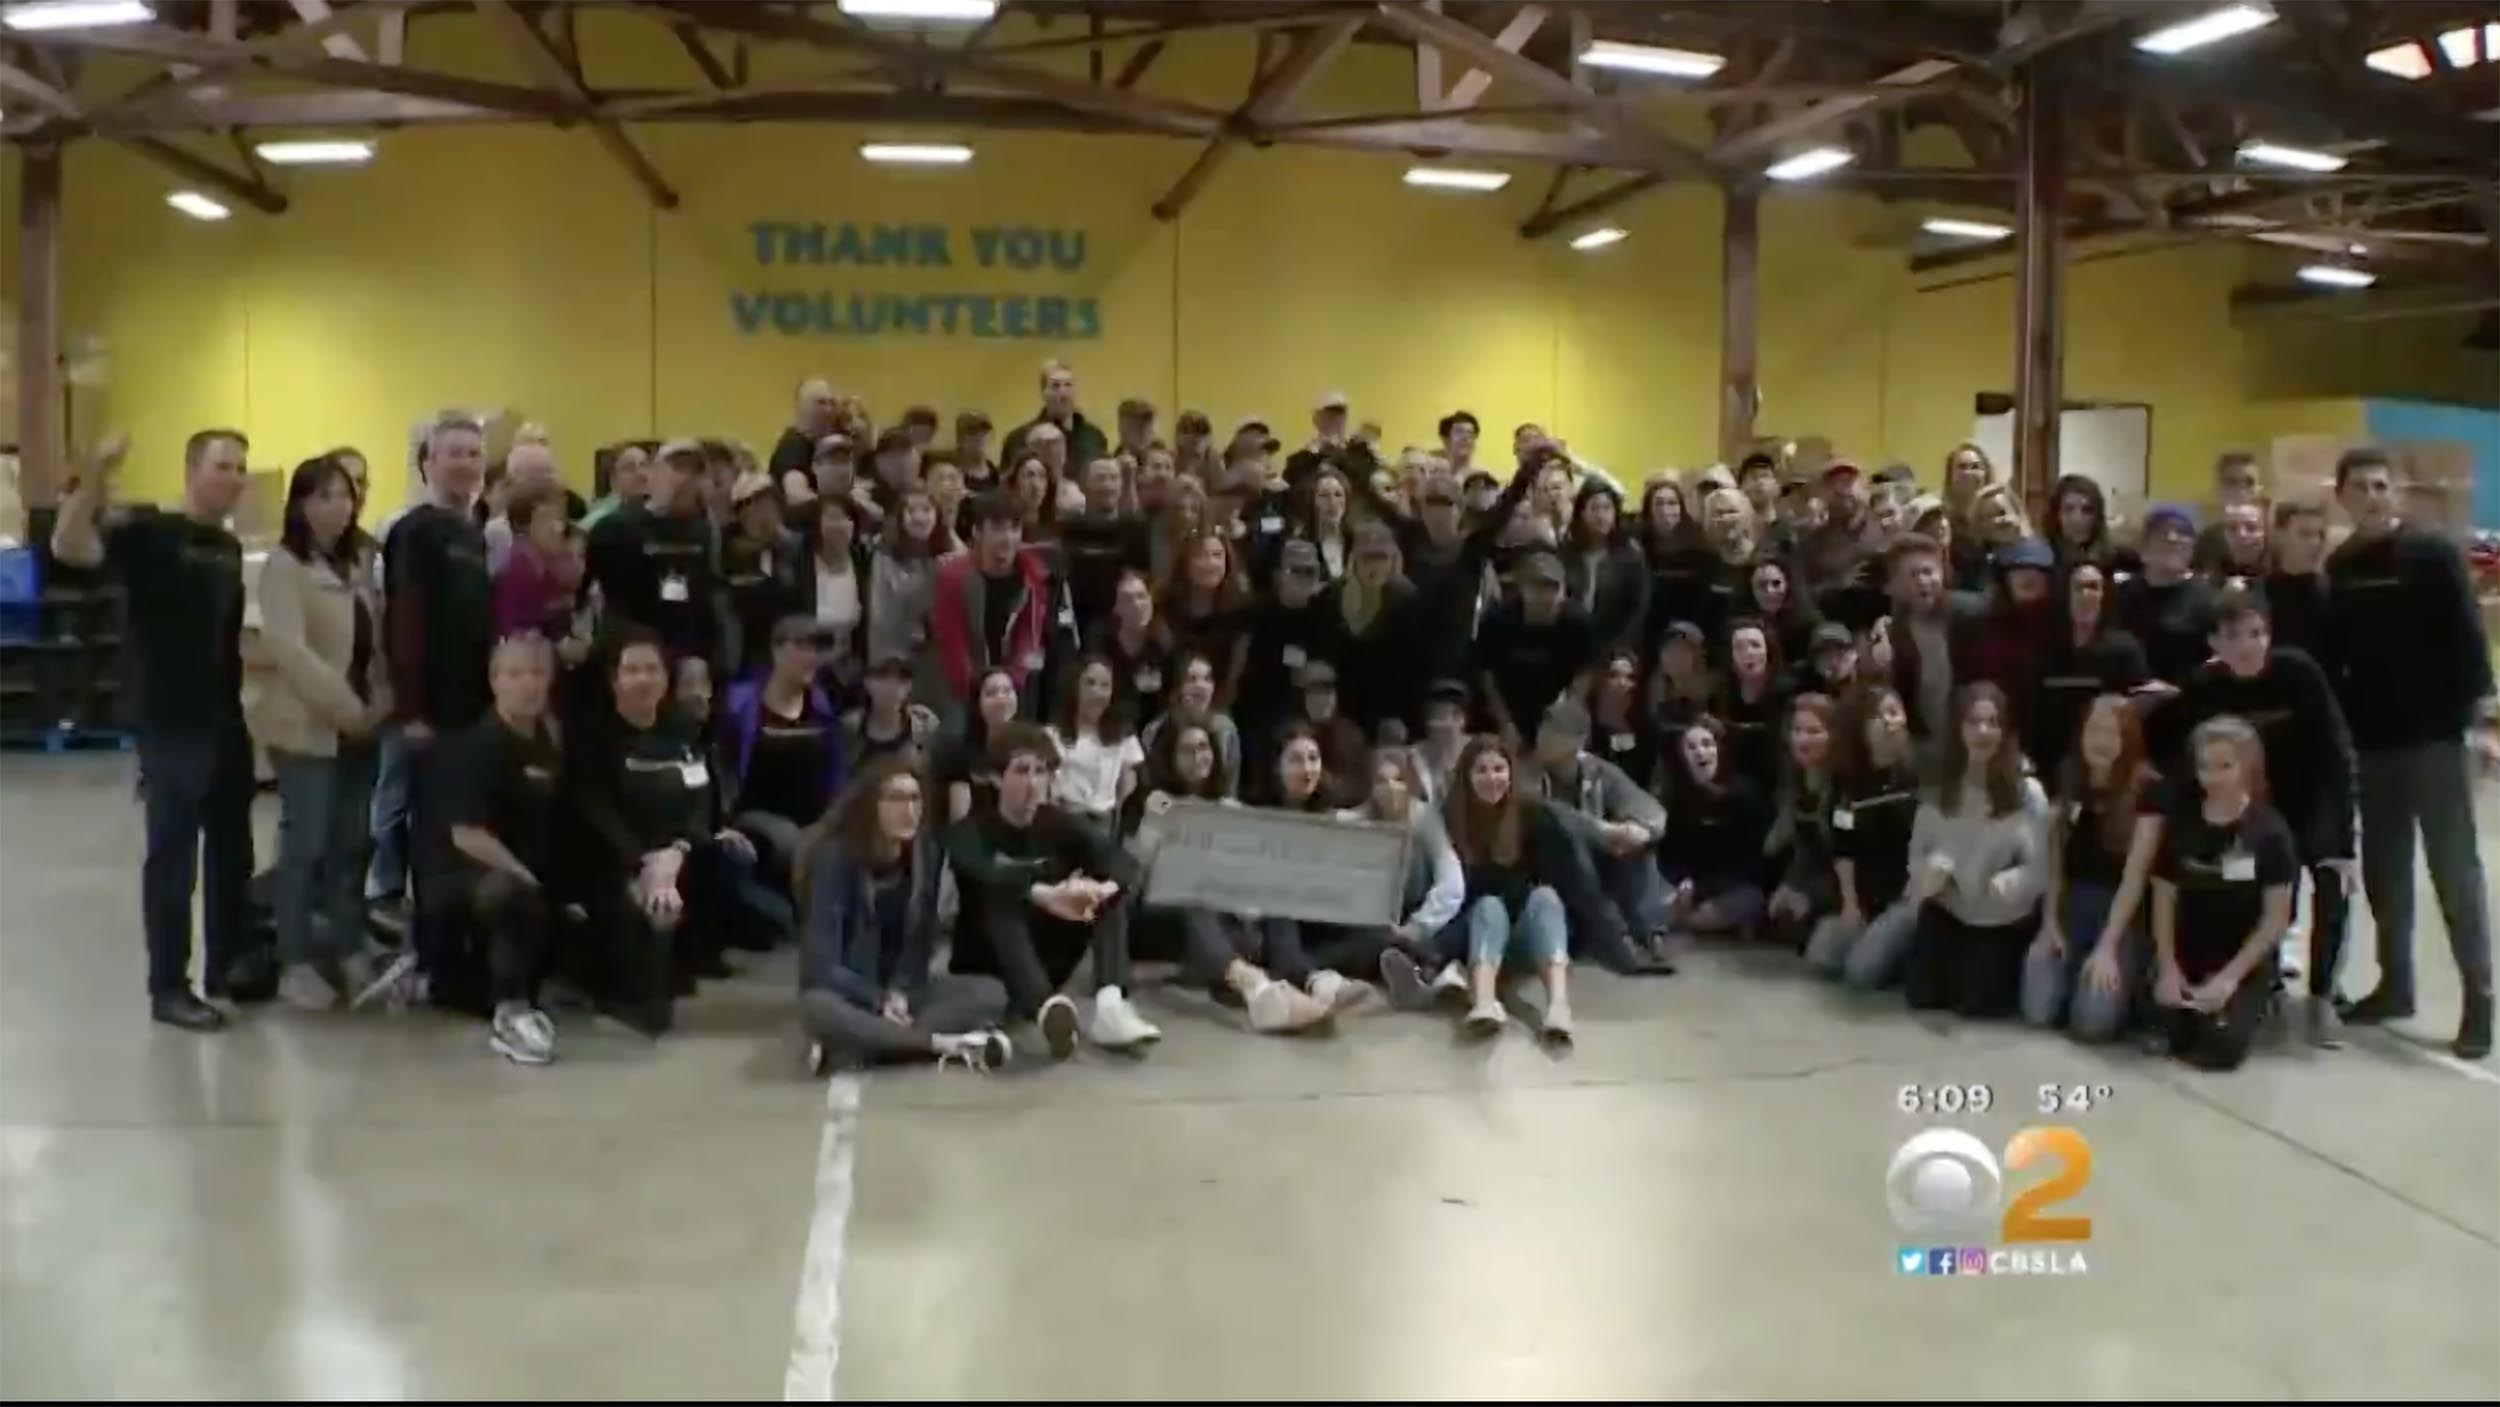 Roughly 150 people joined Jeanne and Gideon Bernstein for the Blaze it Forward day of service at Second Harvest Food Bank in Irvine on Martin Luther King Day.